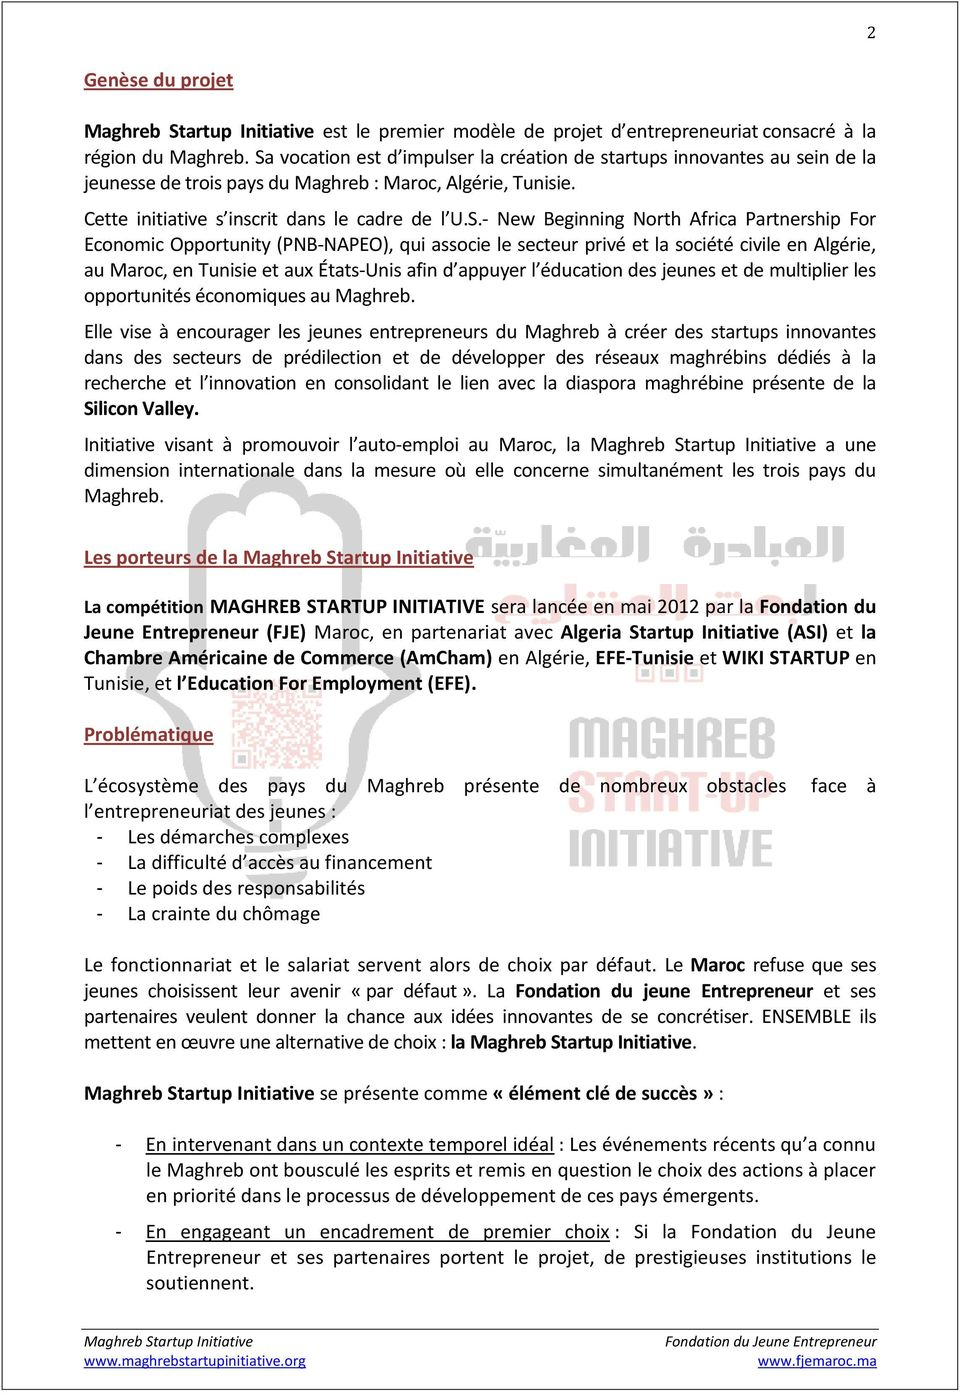 Beginning North Africa Partnership For Economic Opportunity (PNB-NAPEO), qui associe le secteur privé et la société civile en Algérie, au Maroc, en Tunisie et aux États-Unis afin d appuyer l